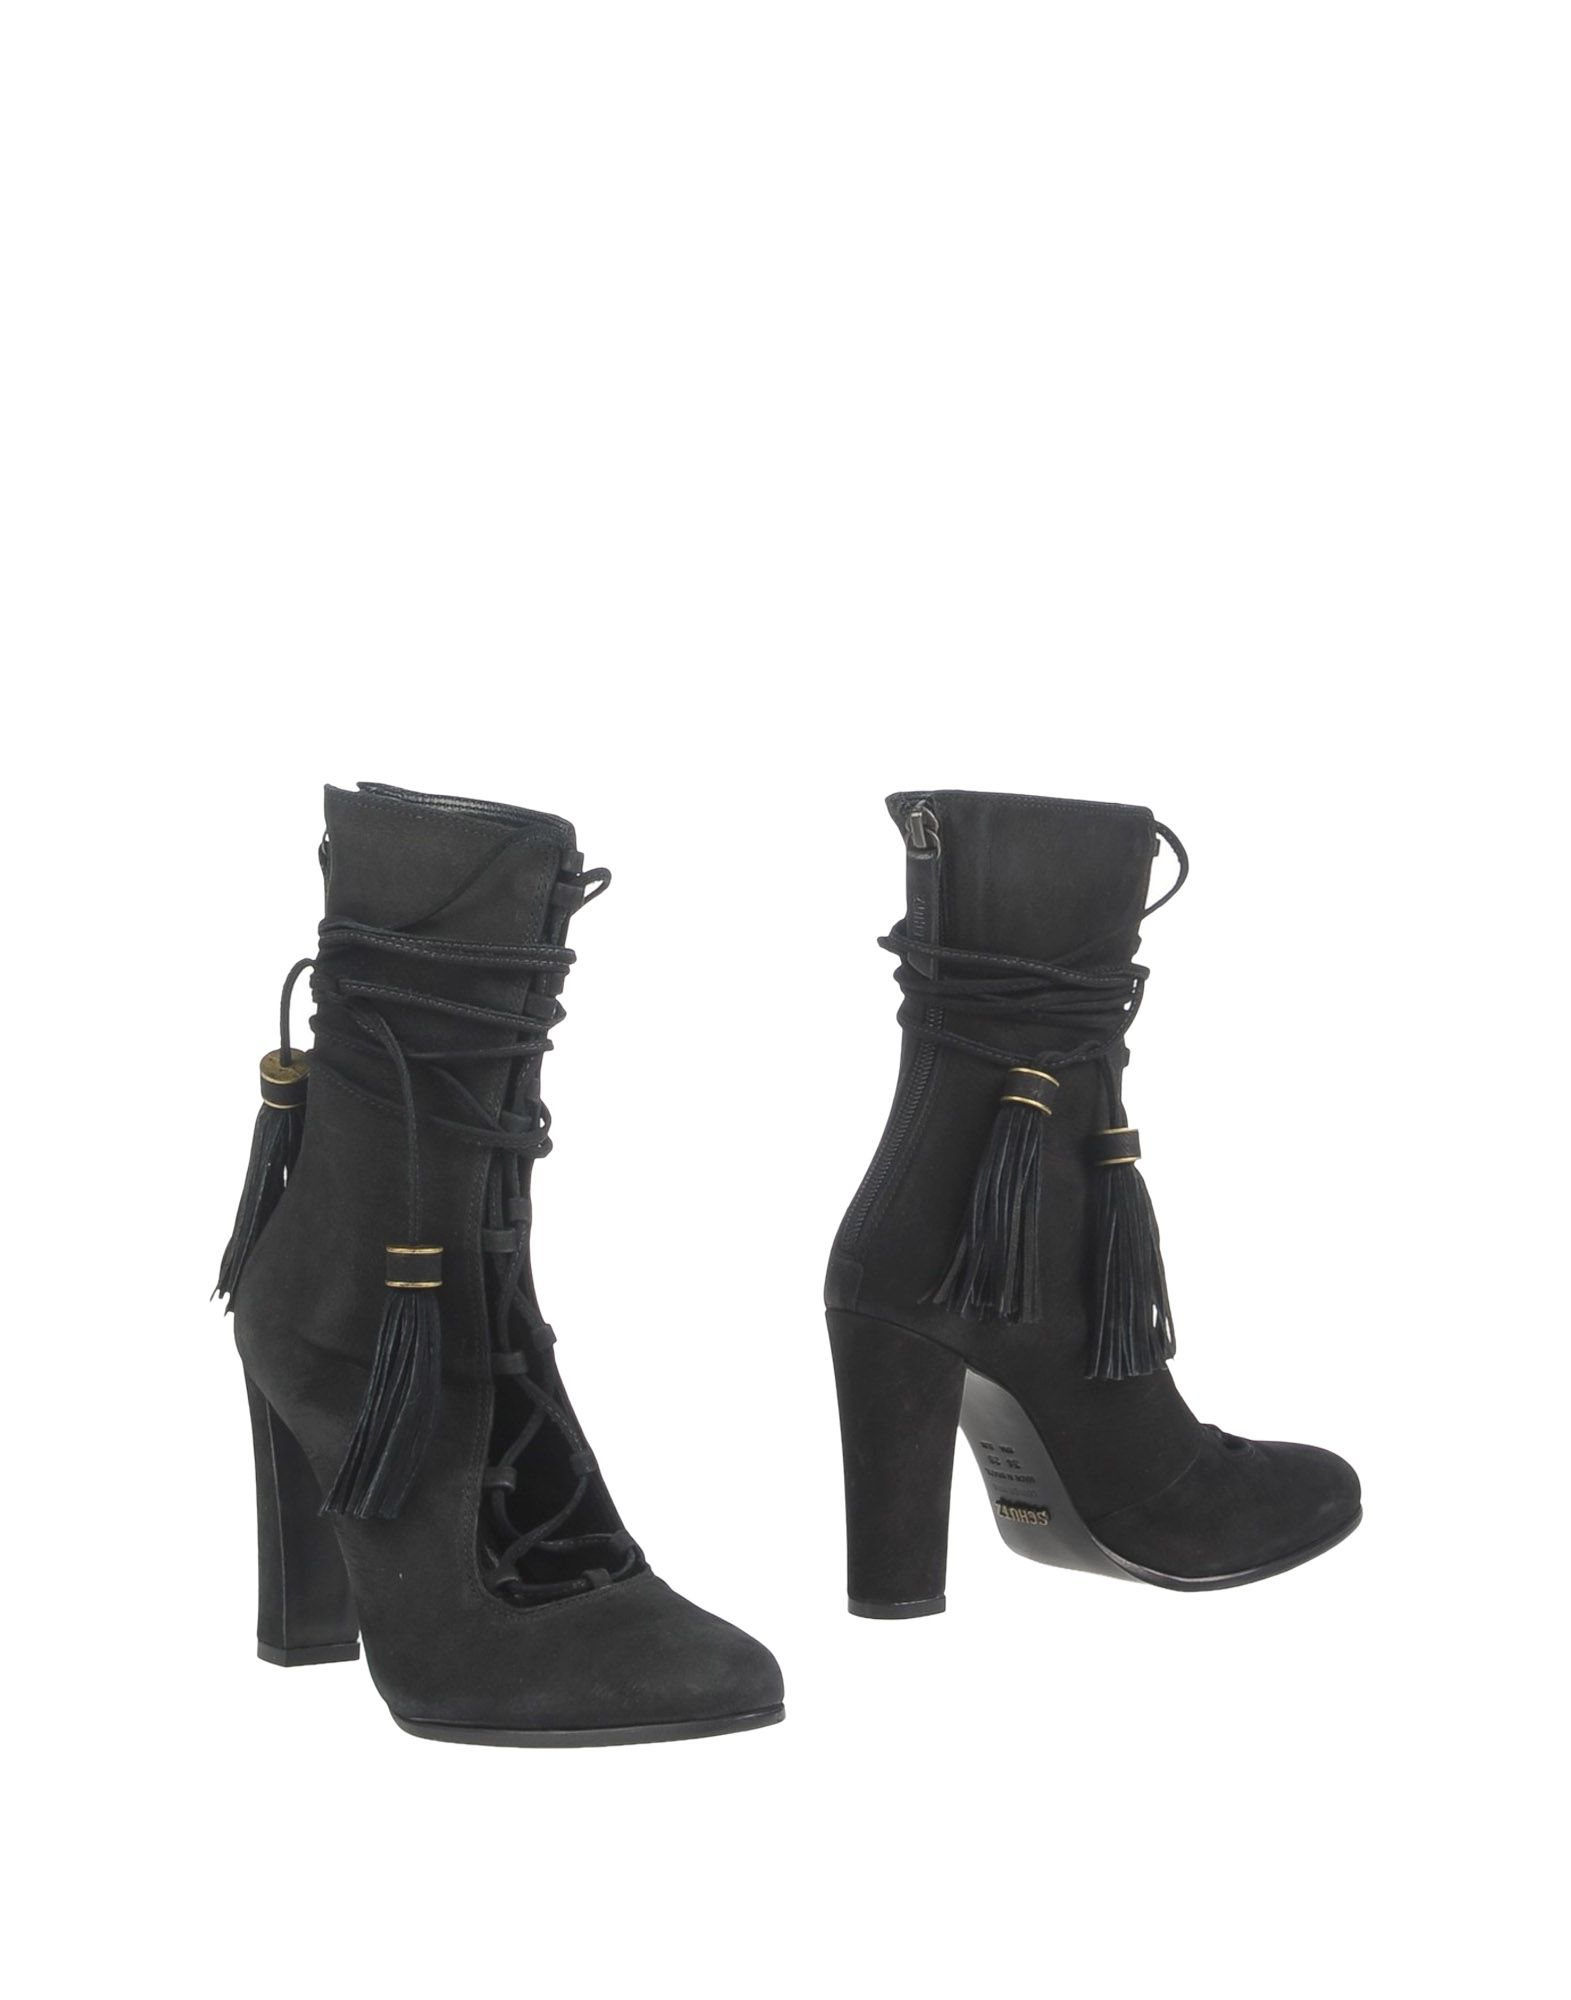 Schutz Ankle Boot - Women Schutz Ankle United Boots online on  United Ankle Kingdom - 11305836KJ c25ab8